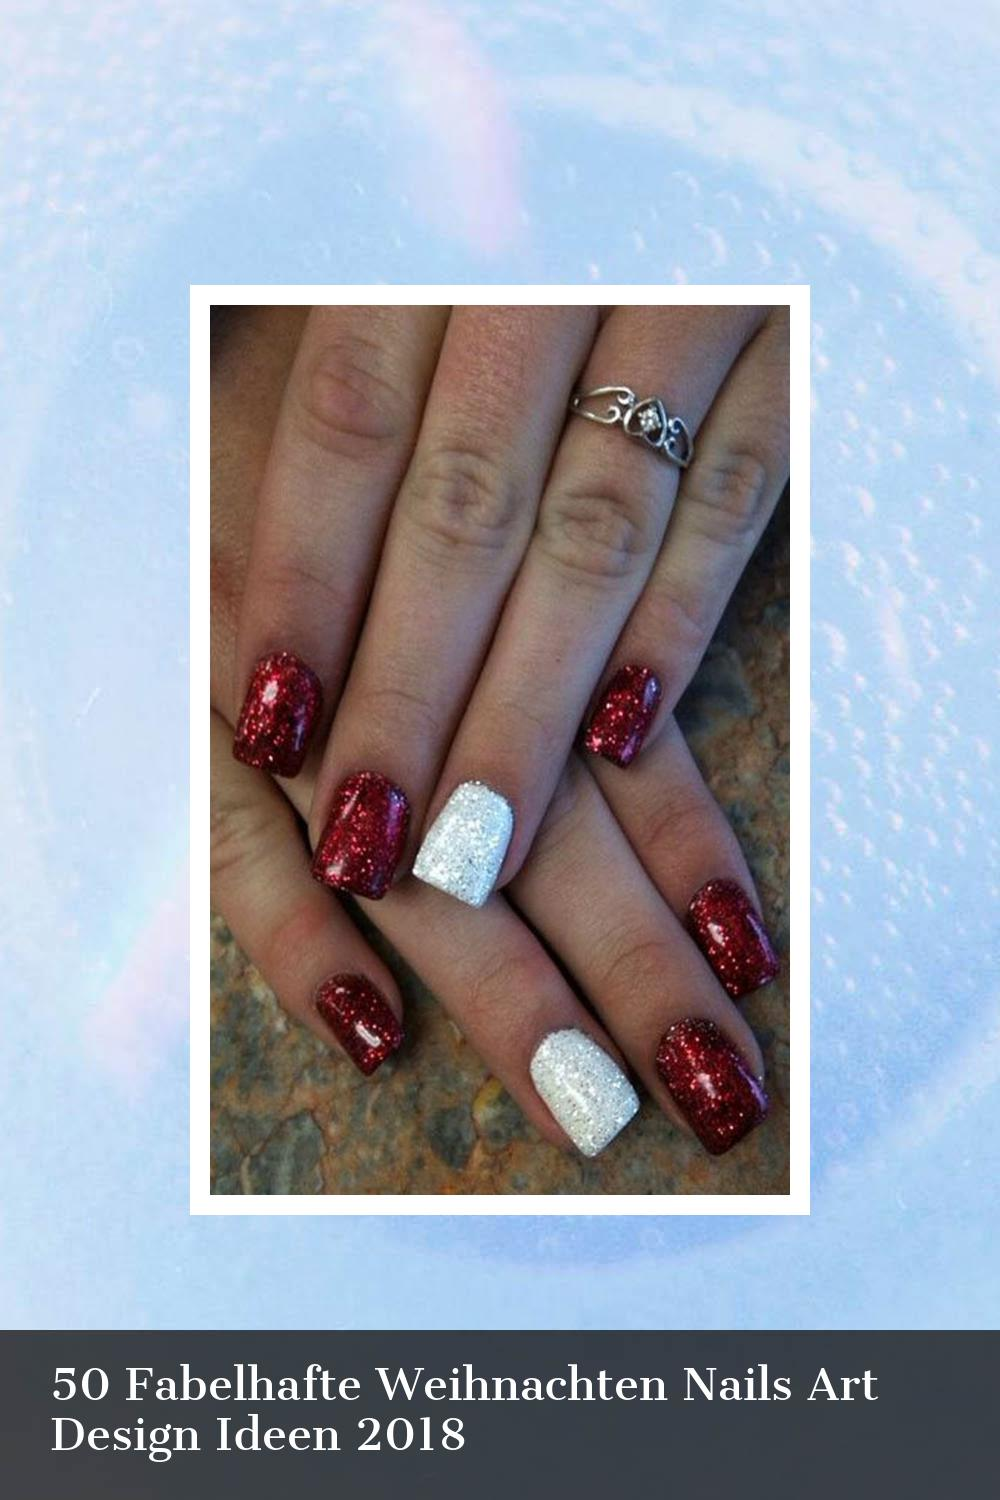 50 Fabelhafte Weihnachten Nails Art Design Ideen 2018 41